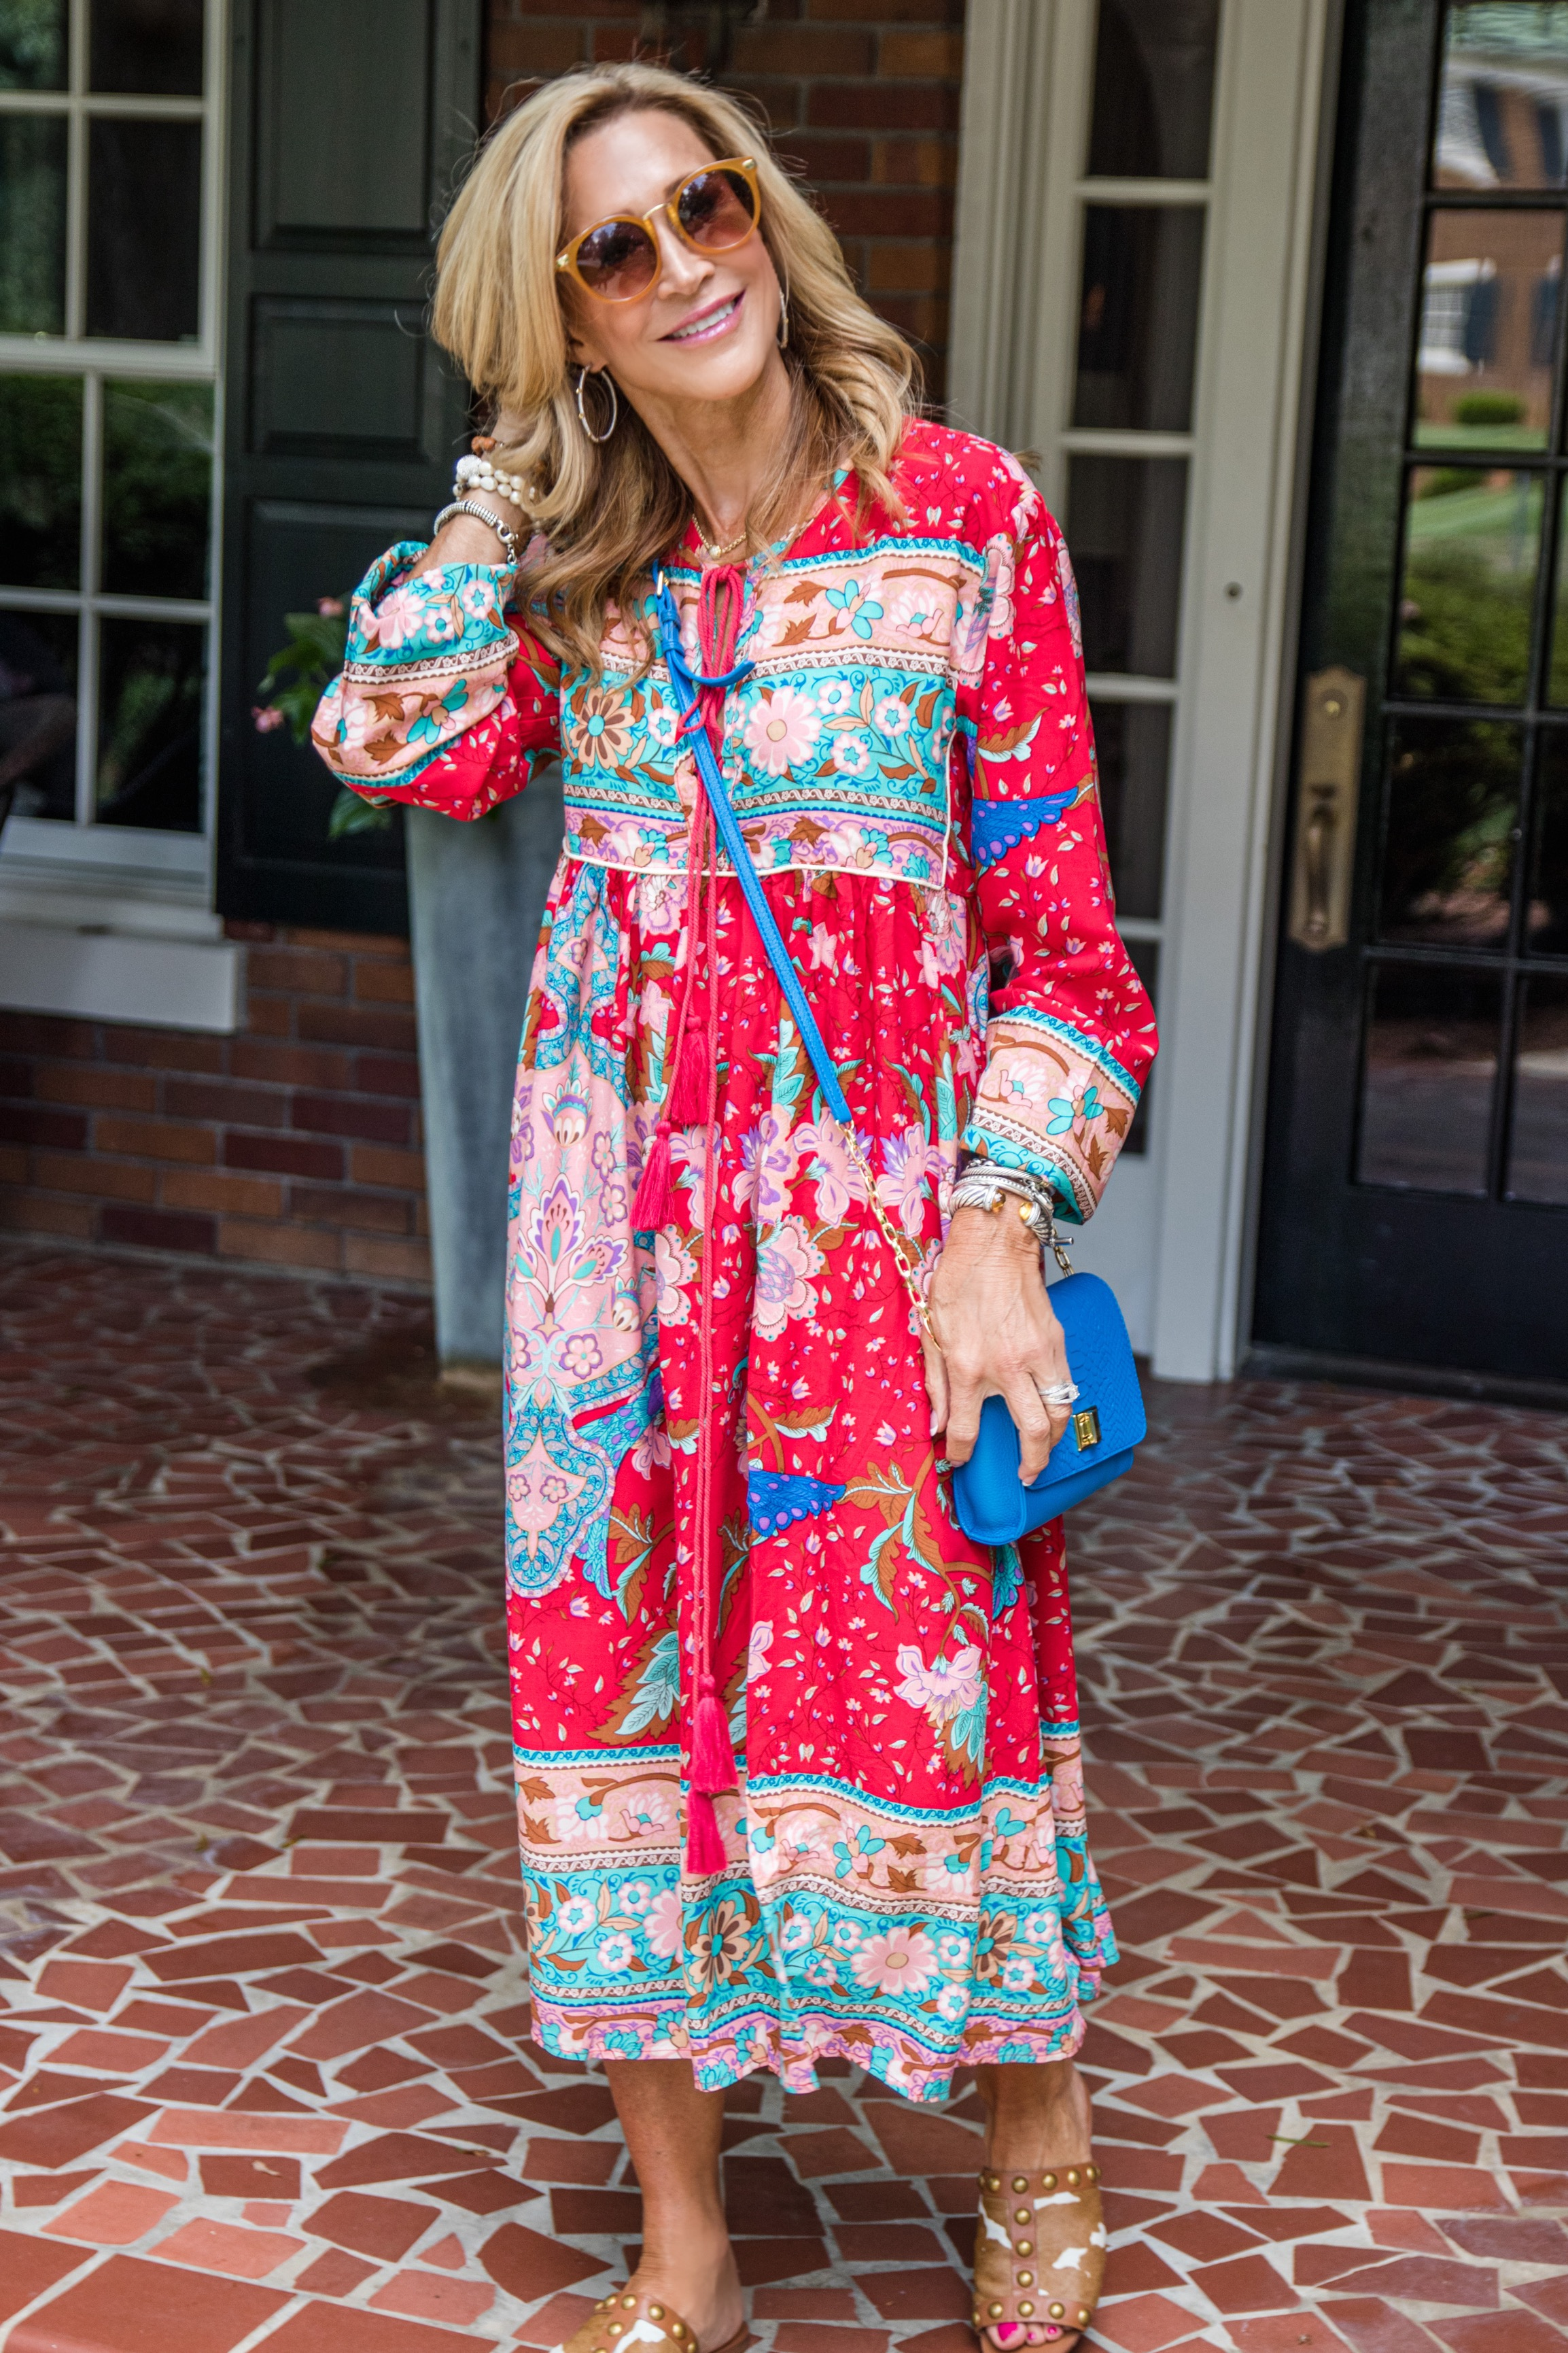 Amazon dress with Tory Burch sandals - Crazy Blonde Style